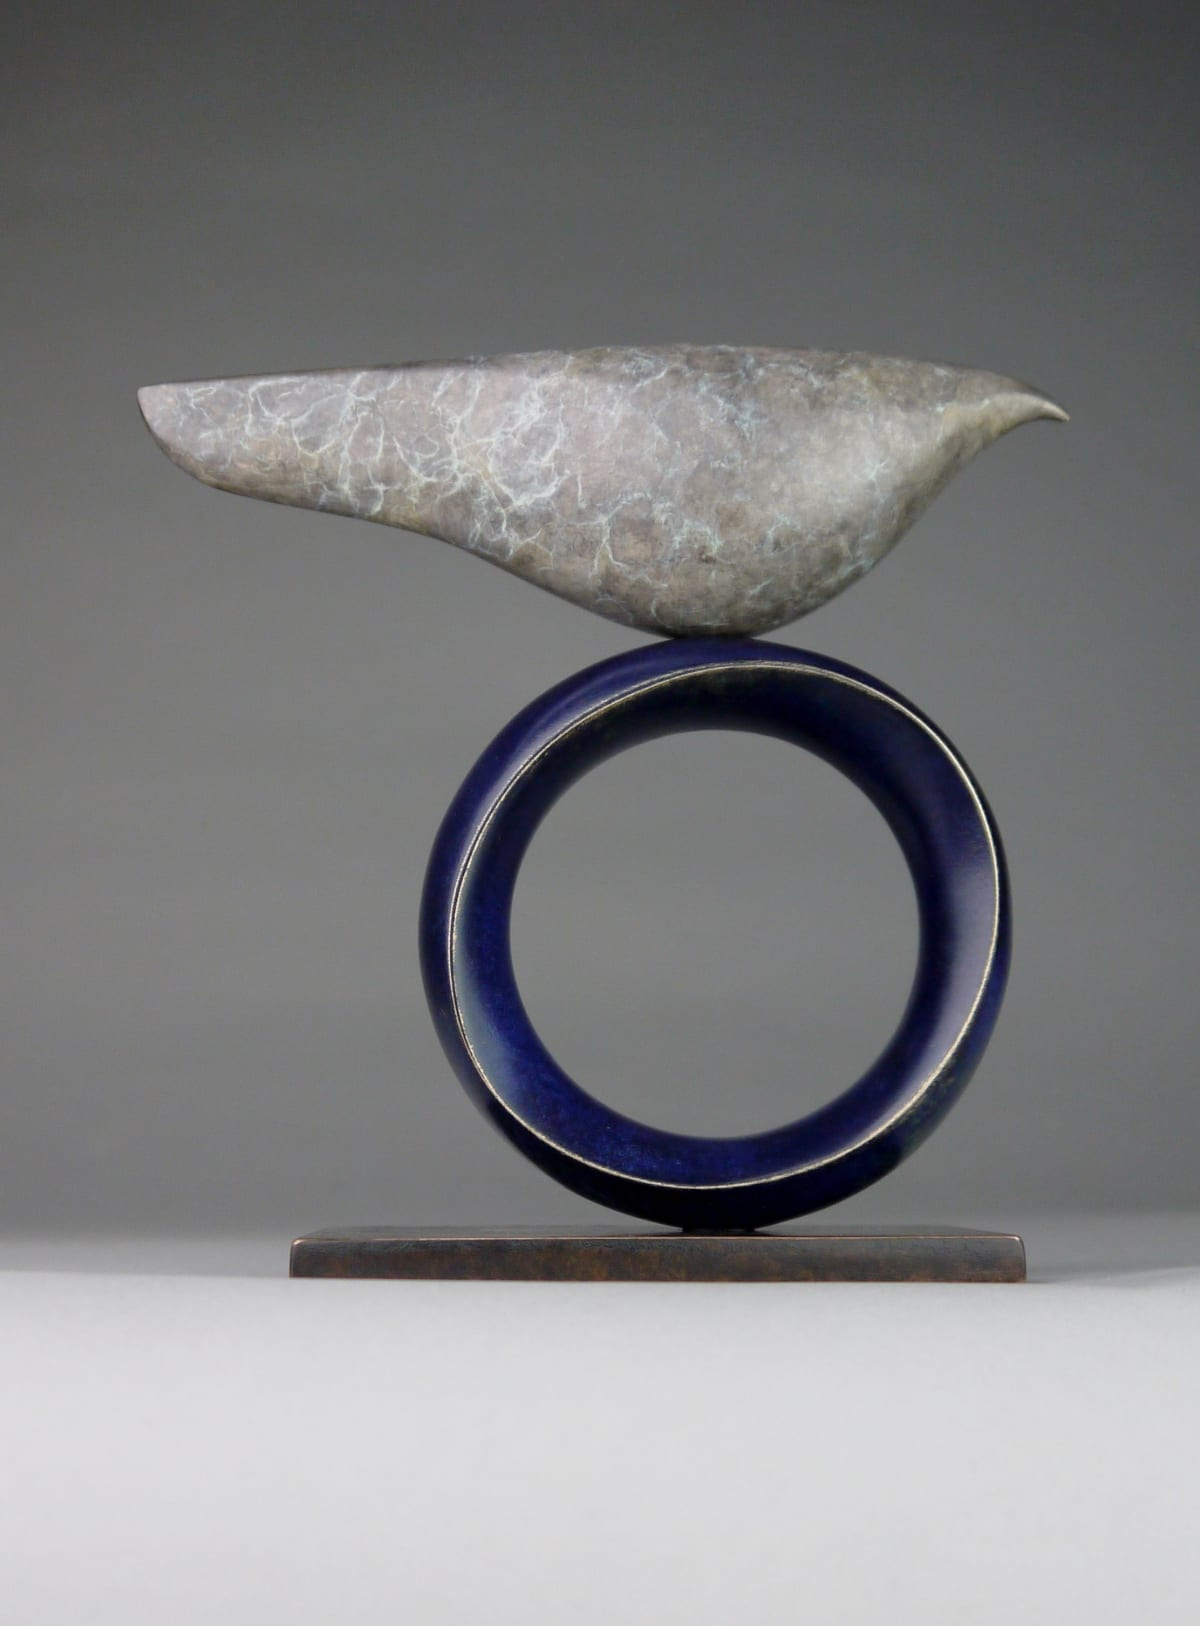 Stephen Page Venus Bird, 2019 Bronze Sculpture 14 x 14 x 6 cm 5 1/2 x 5 1/2 x 2 3/8 in Edition 20 of 25